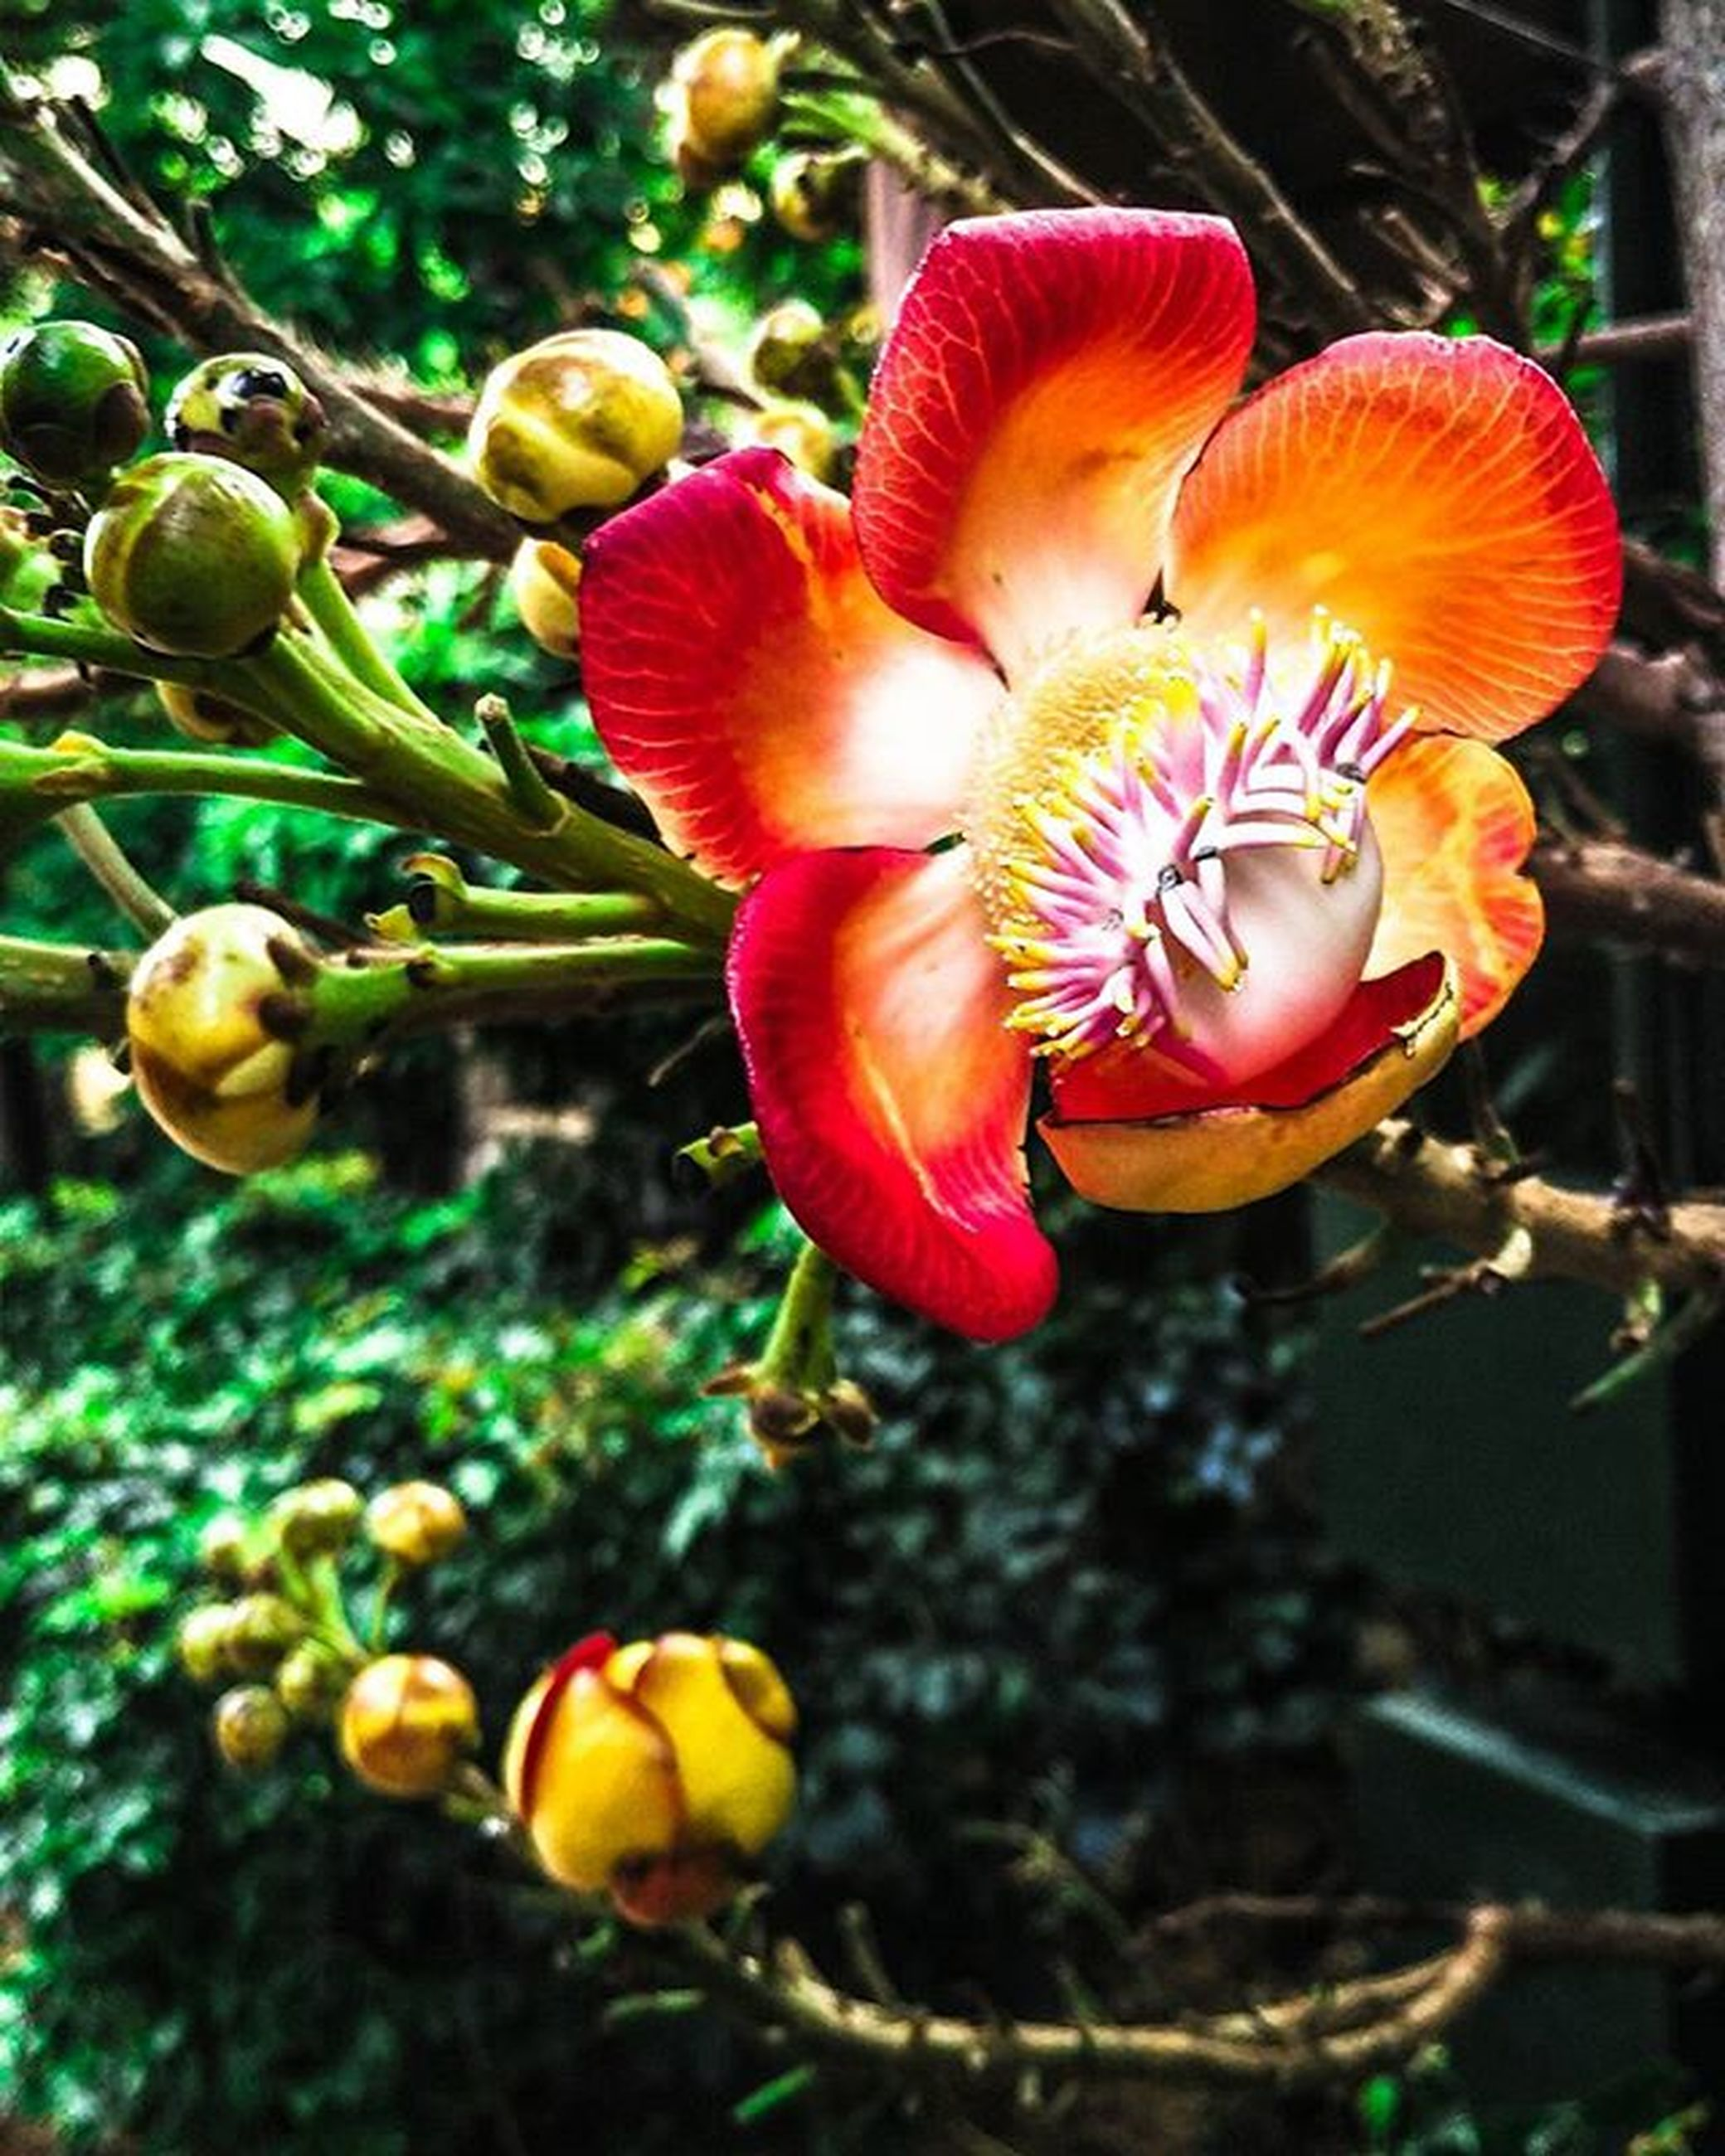 flower, growth, freshness, petal, fragility, beauty in nature, focus on foreground, close-up, flower head, nature, bud, plant, blooming, tree, outdoors, day, no people, in bloom, orange color, park - man made space